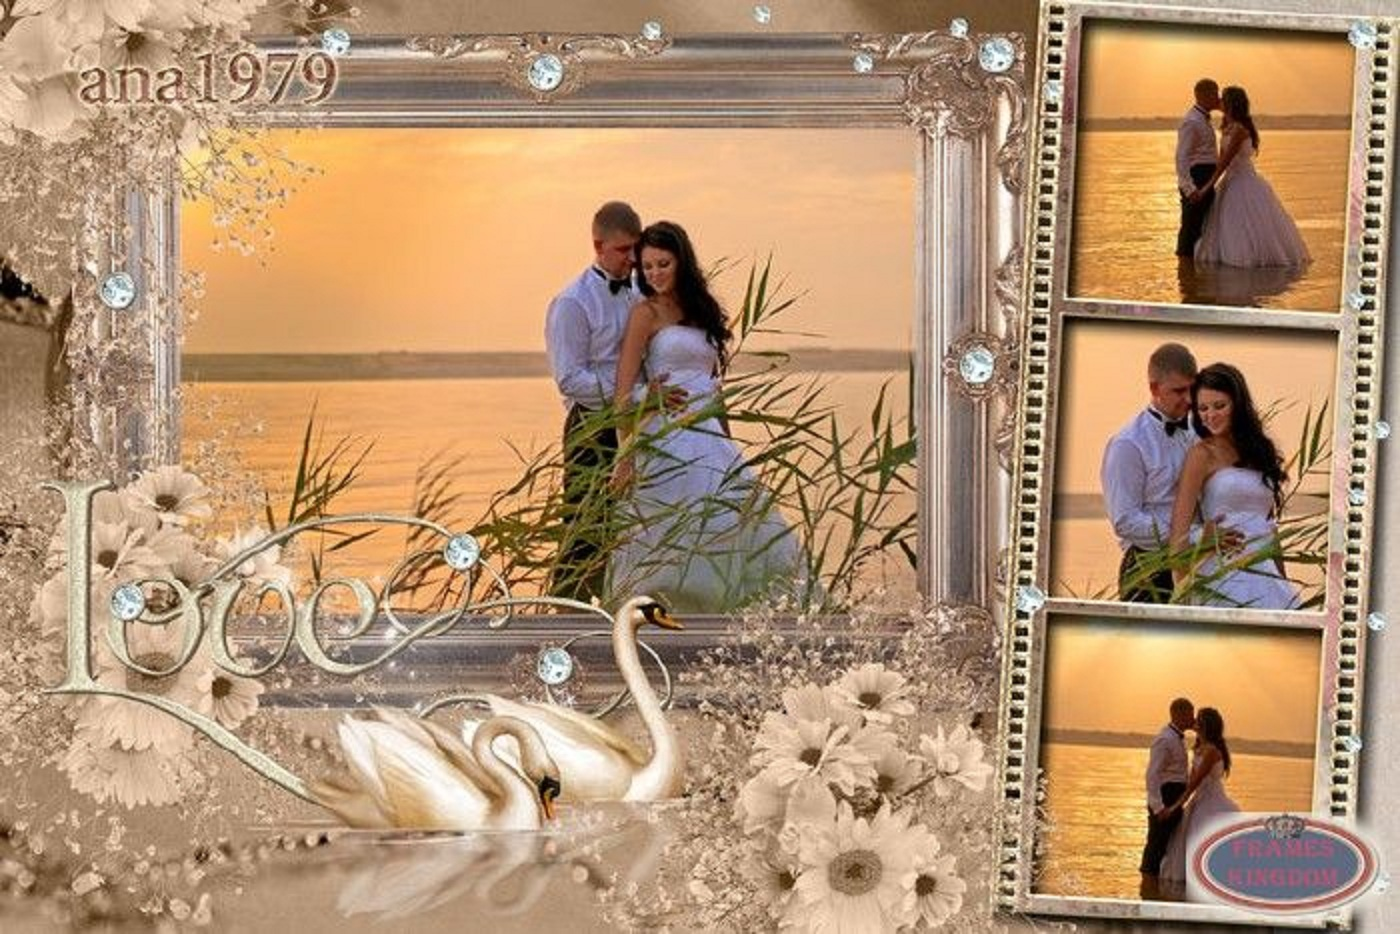 Cute couple picture frame ideas selection photo and picture ideas couple picture frame ideas picture frames for couples bedroom remodel ideas jeuxipadfo Choice Image